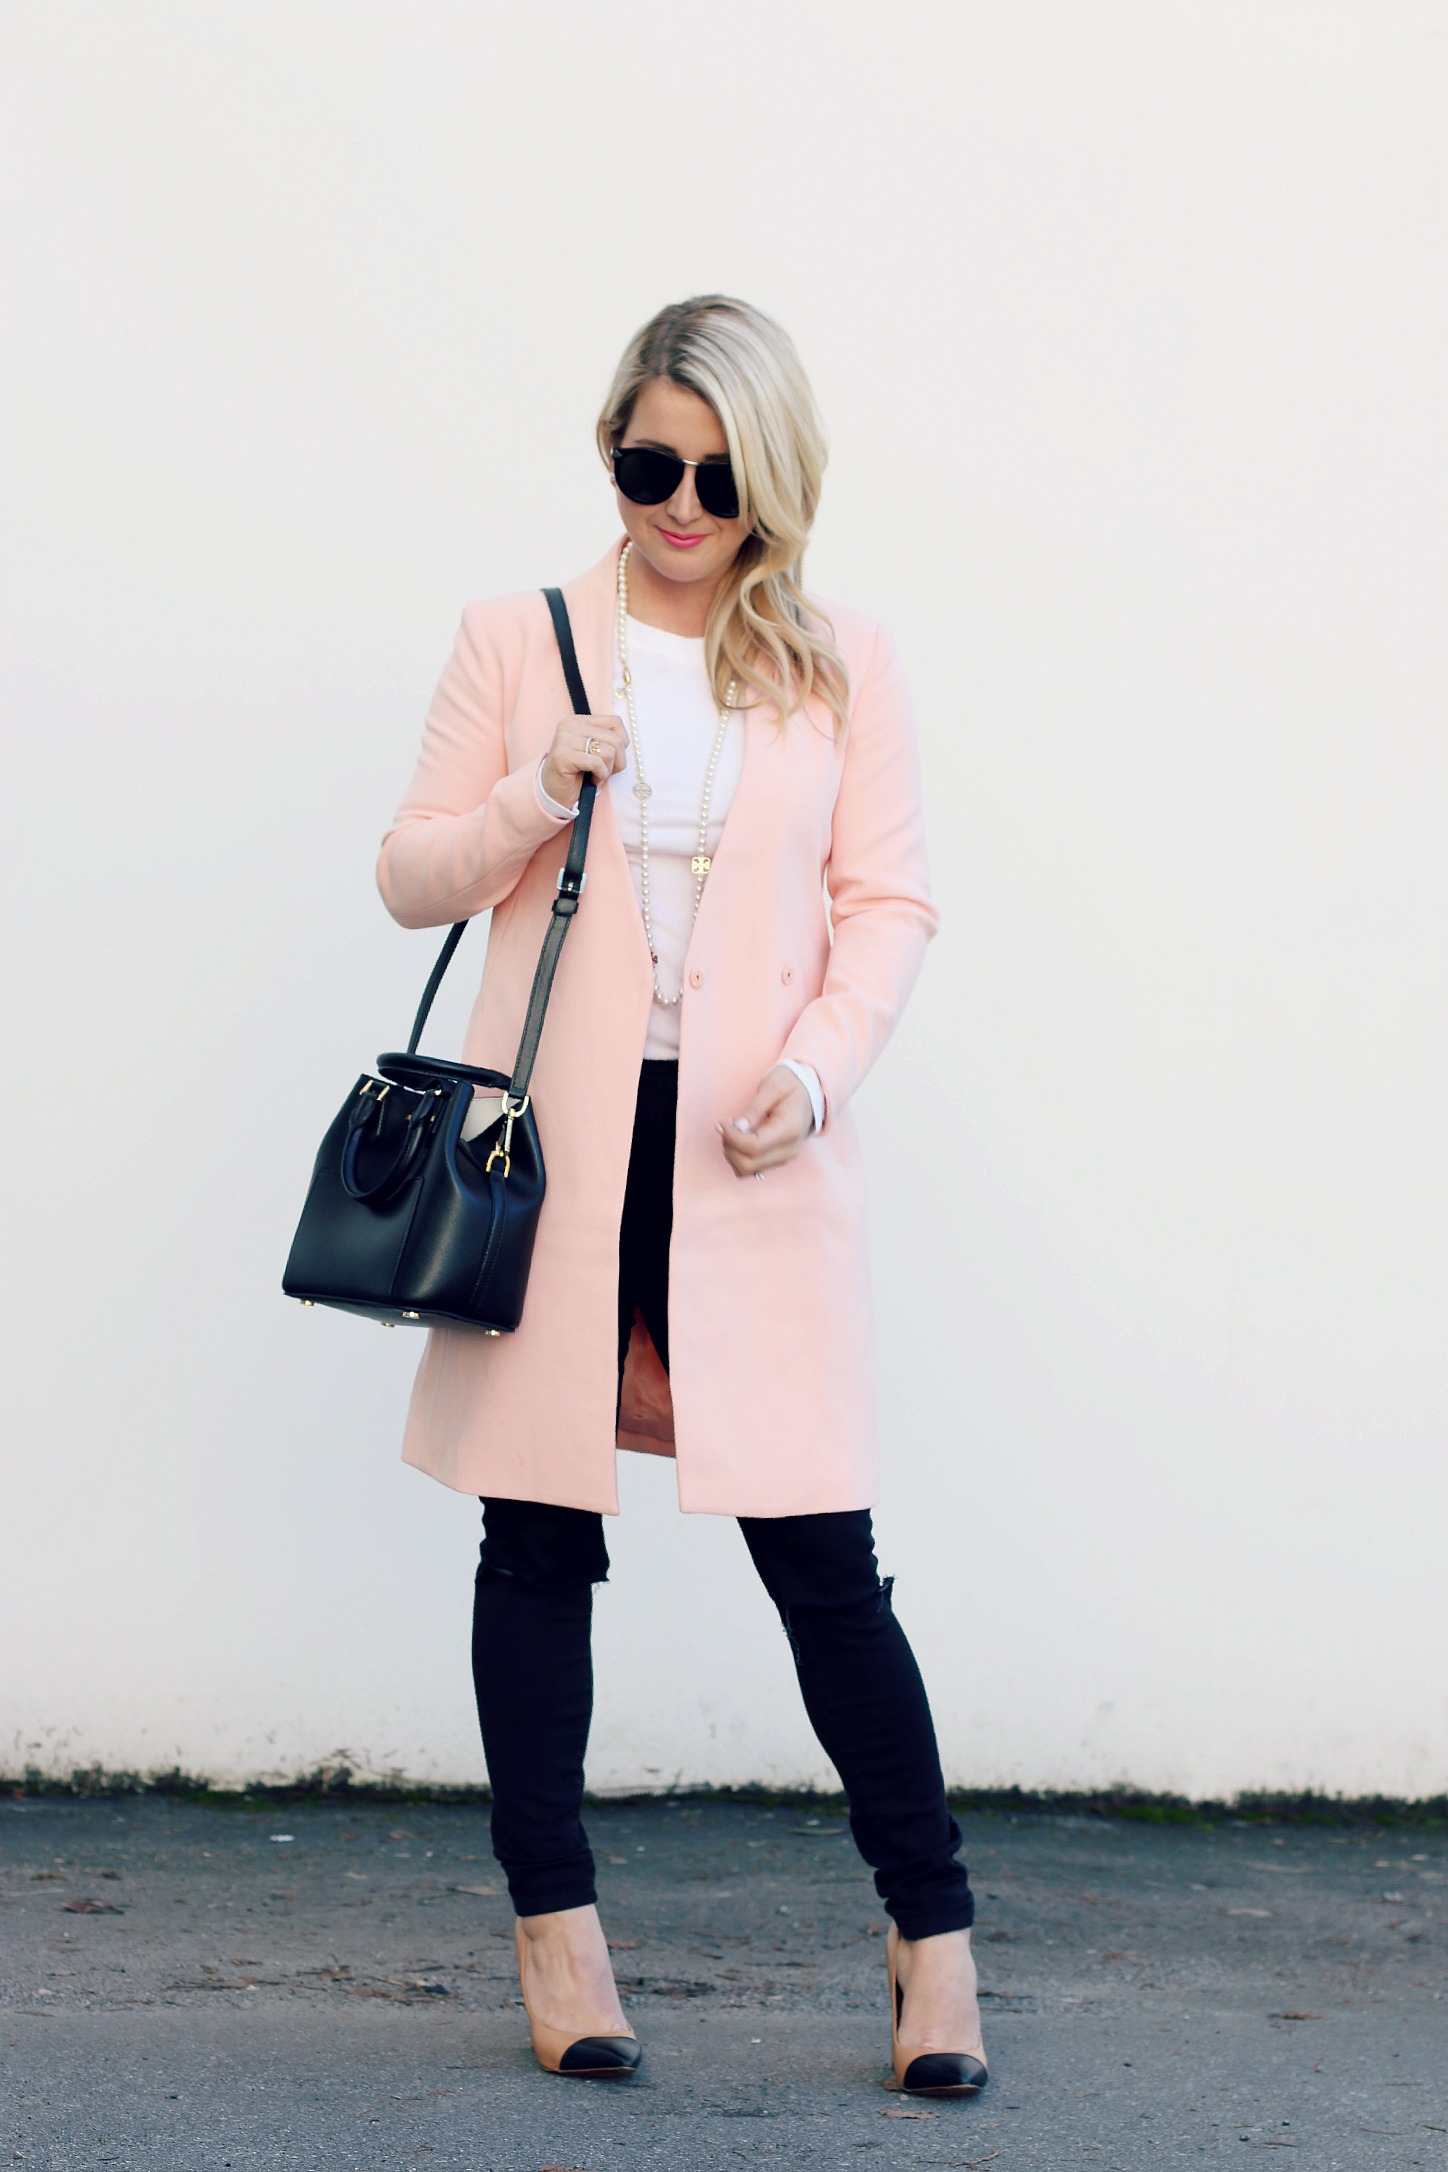 Michael Kors Purse Pink Coat Monika Hibbs